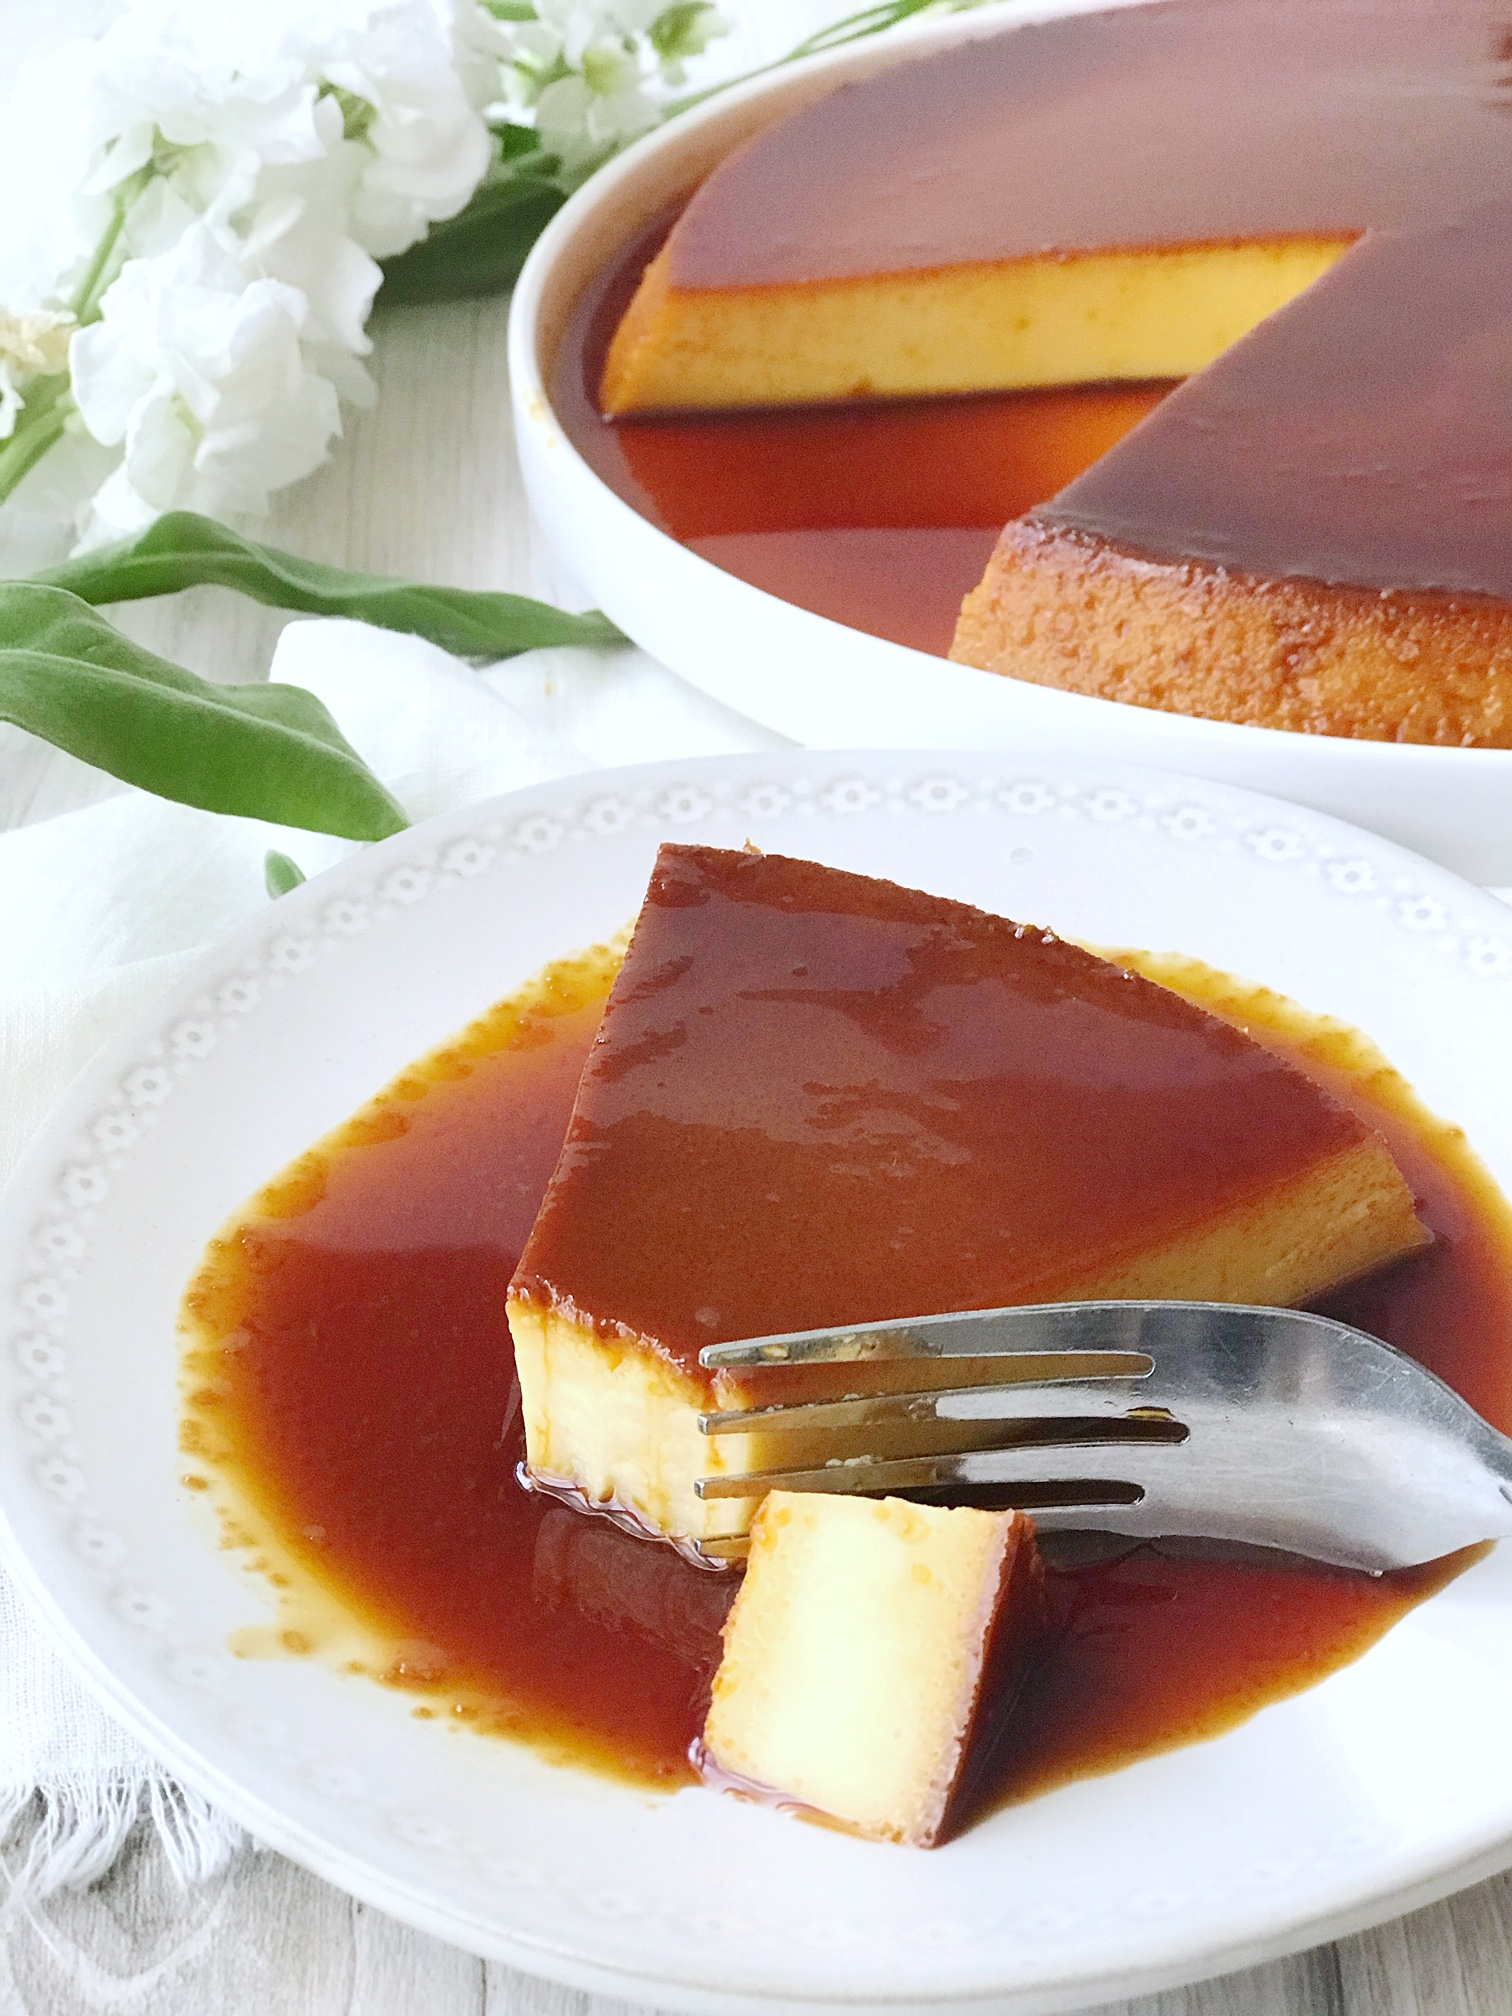 Mexican Flan on a large plate with caramel sauce and a slice missing. Slice of Mexican flan on small plate with piece cut off and a fork. White flowers in background.